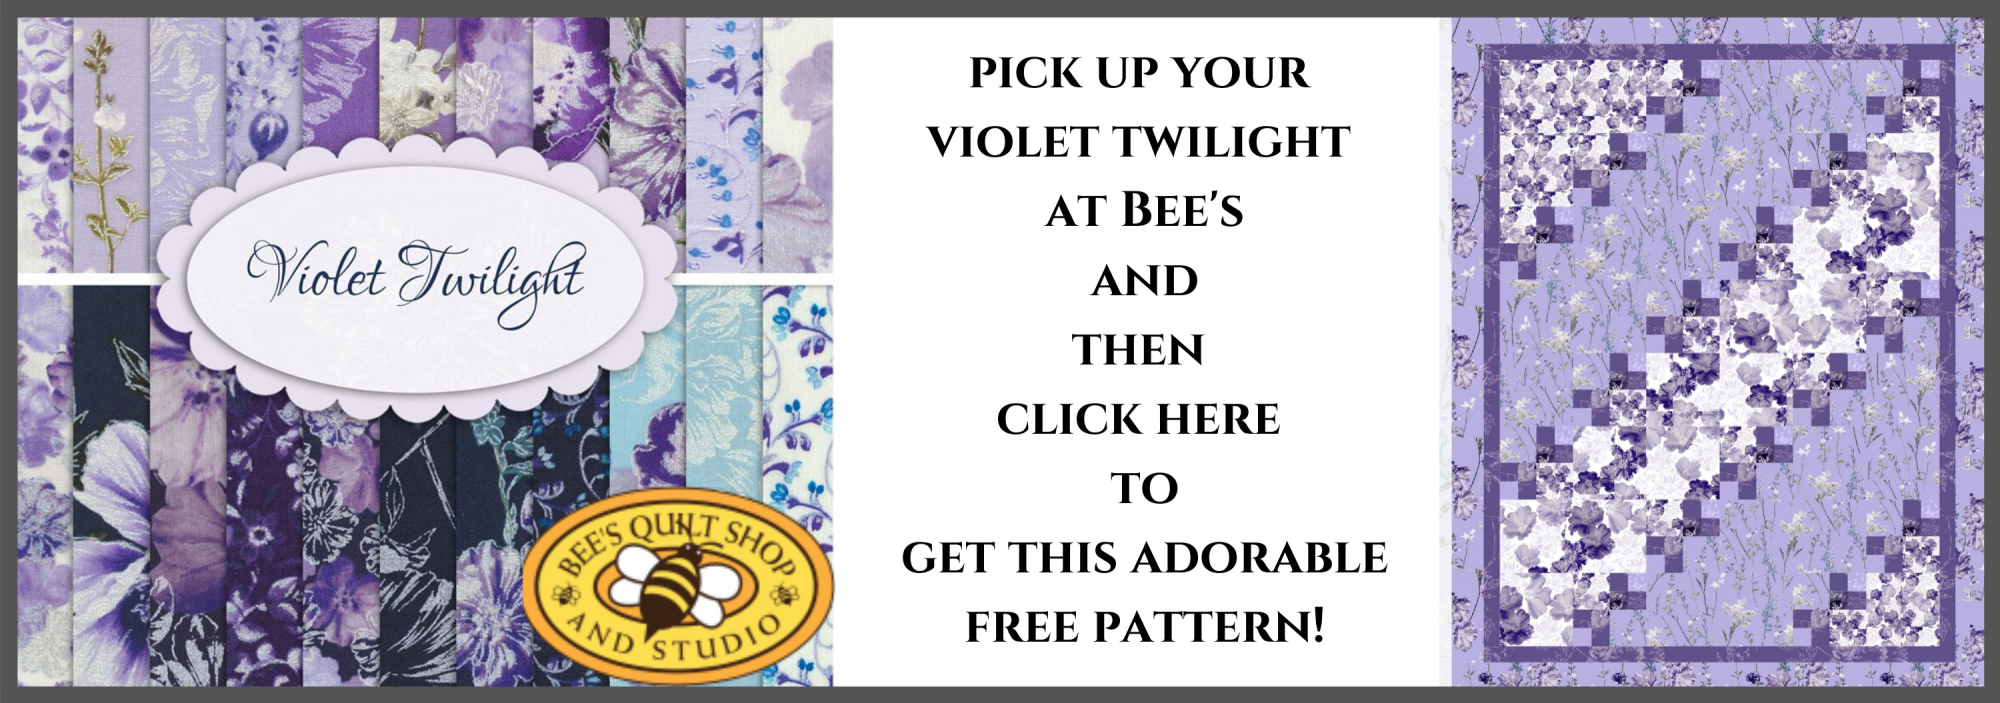 bee's quilt shop st augustine florida fabrics batiks sewing embroidery classes long arm service software scan n cut